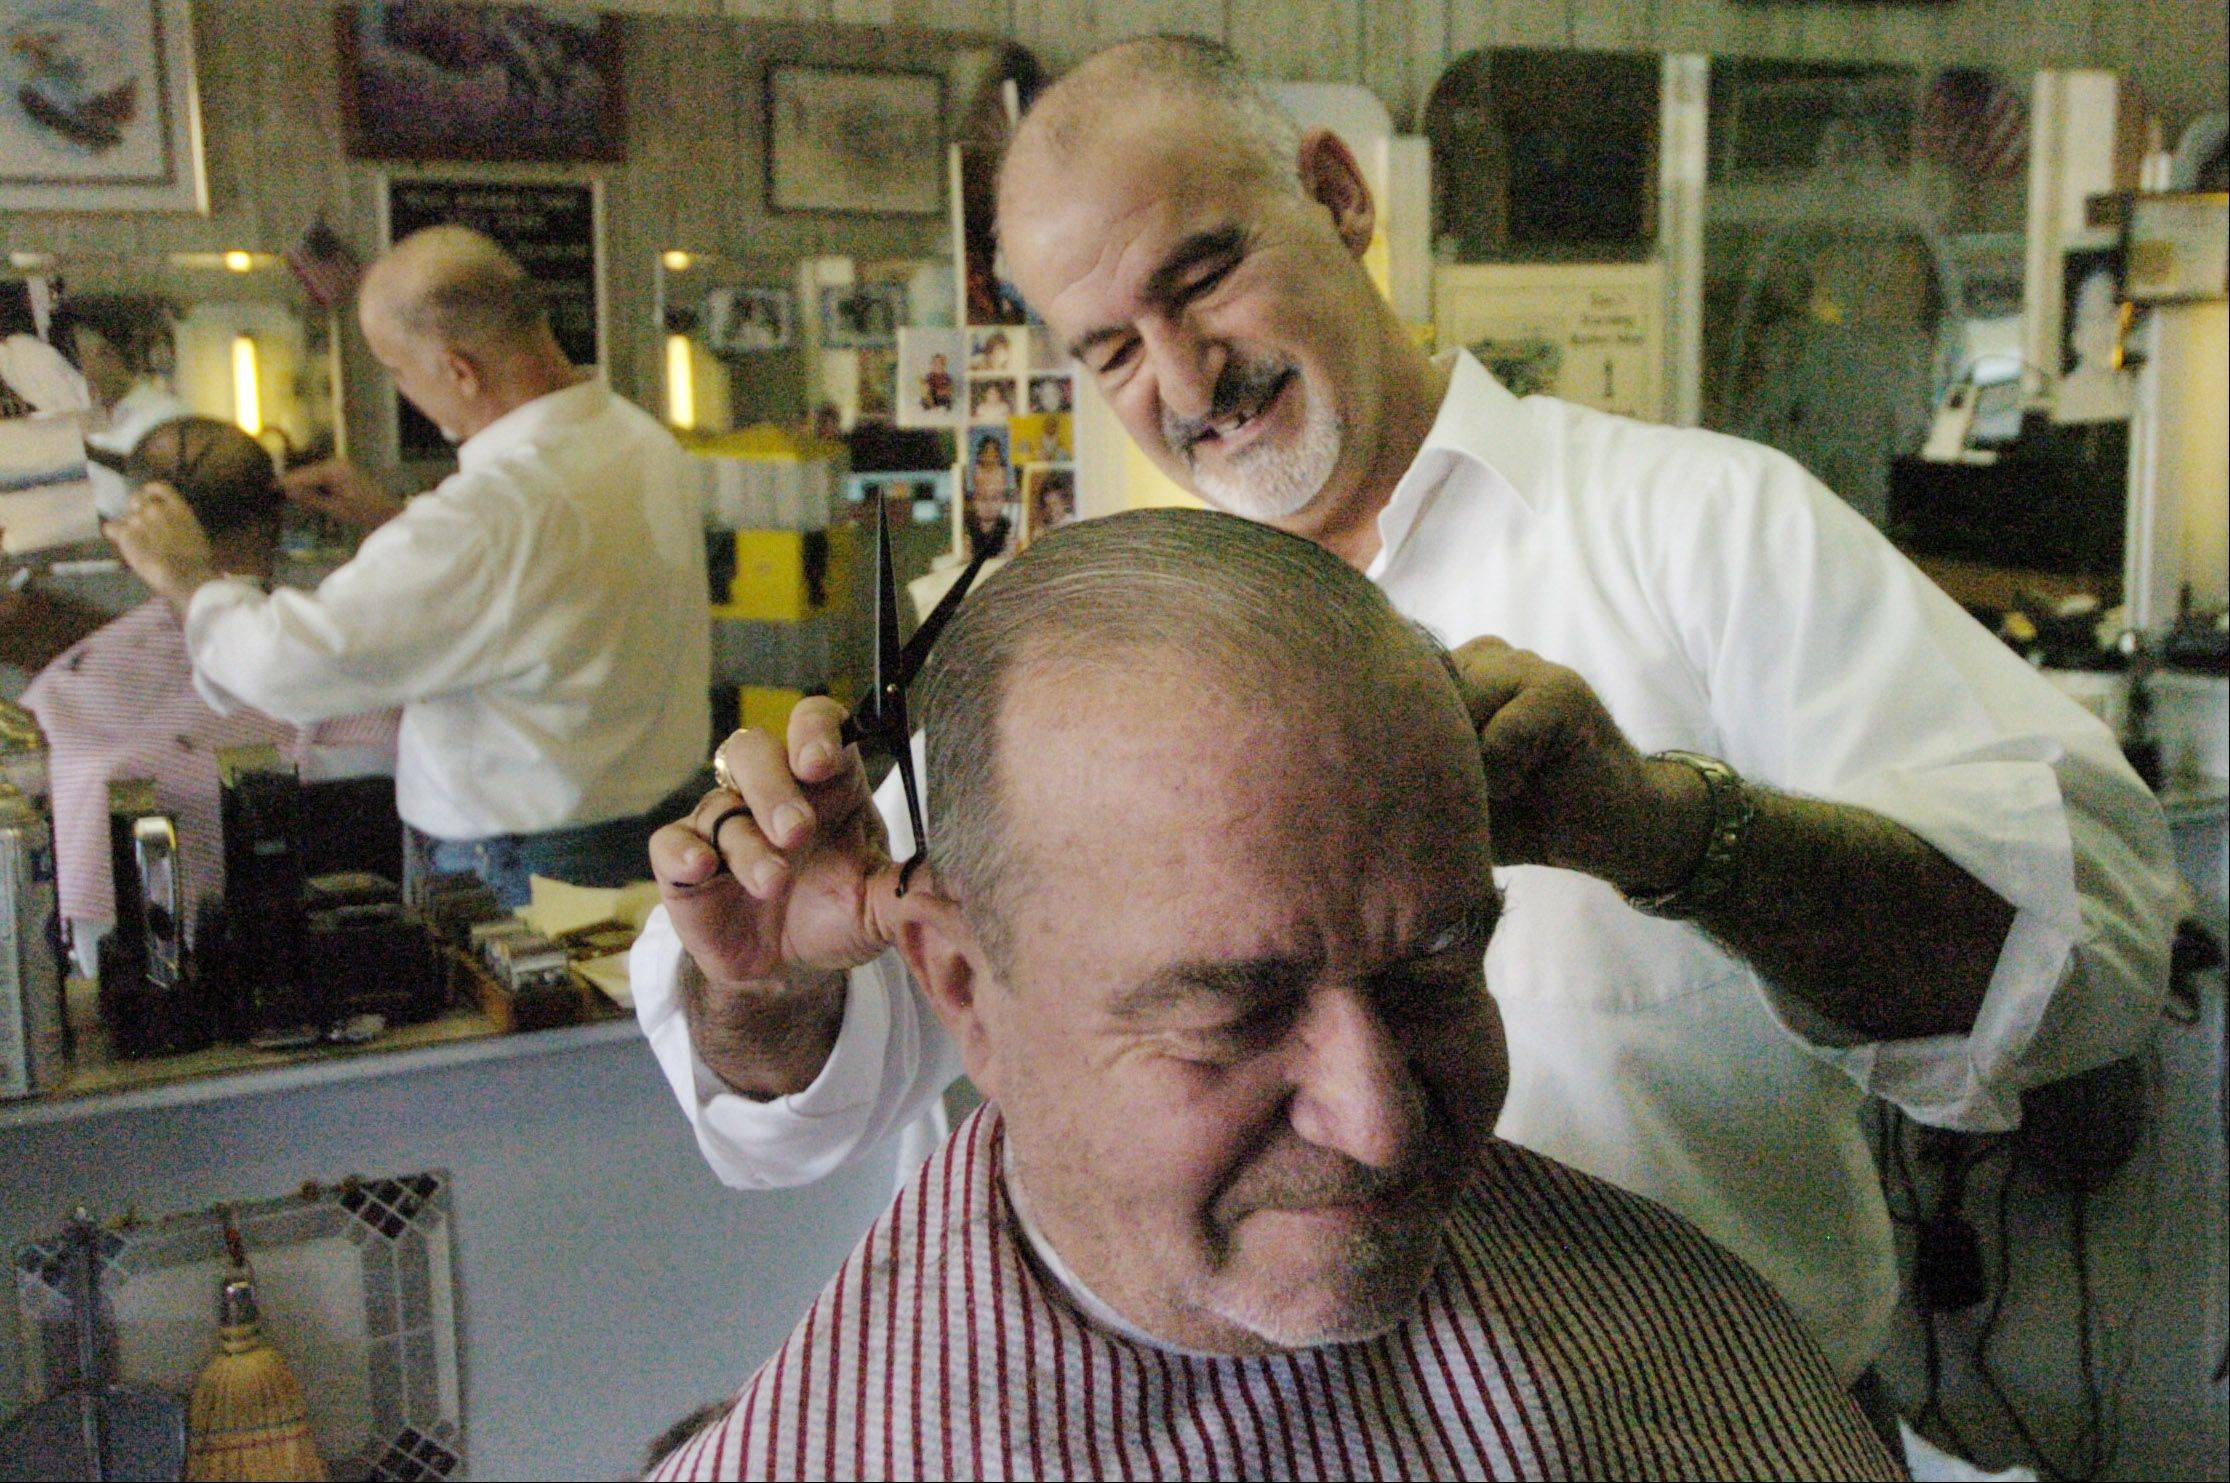 Tony Castelluccio, owner of Tony's Barber Shop in Wauconda, cuts the hair of longtime client Art Billen.